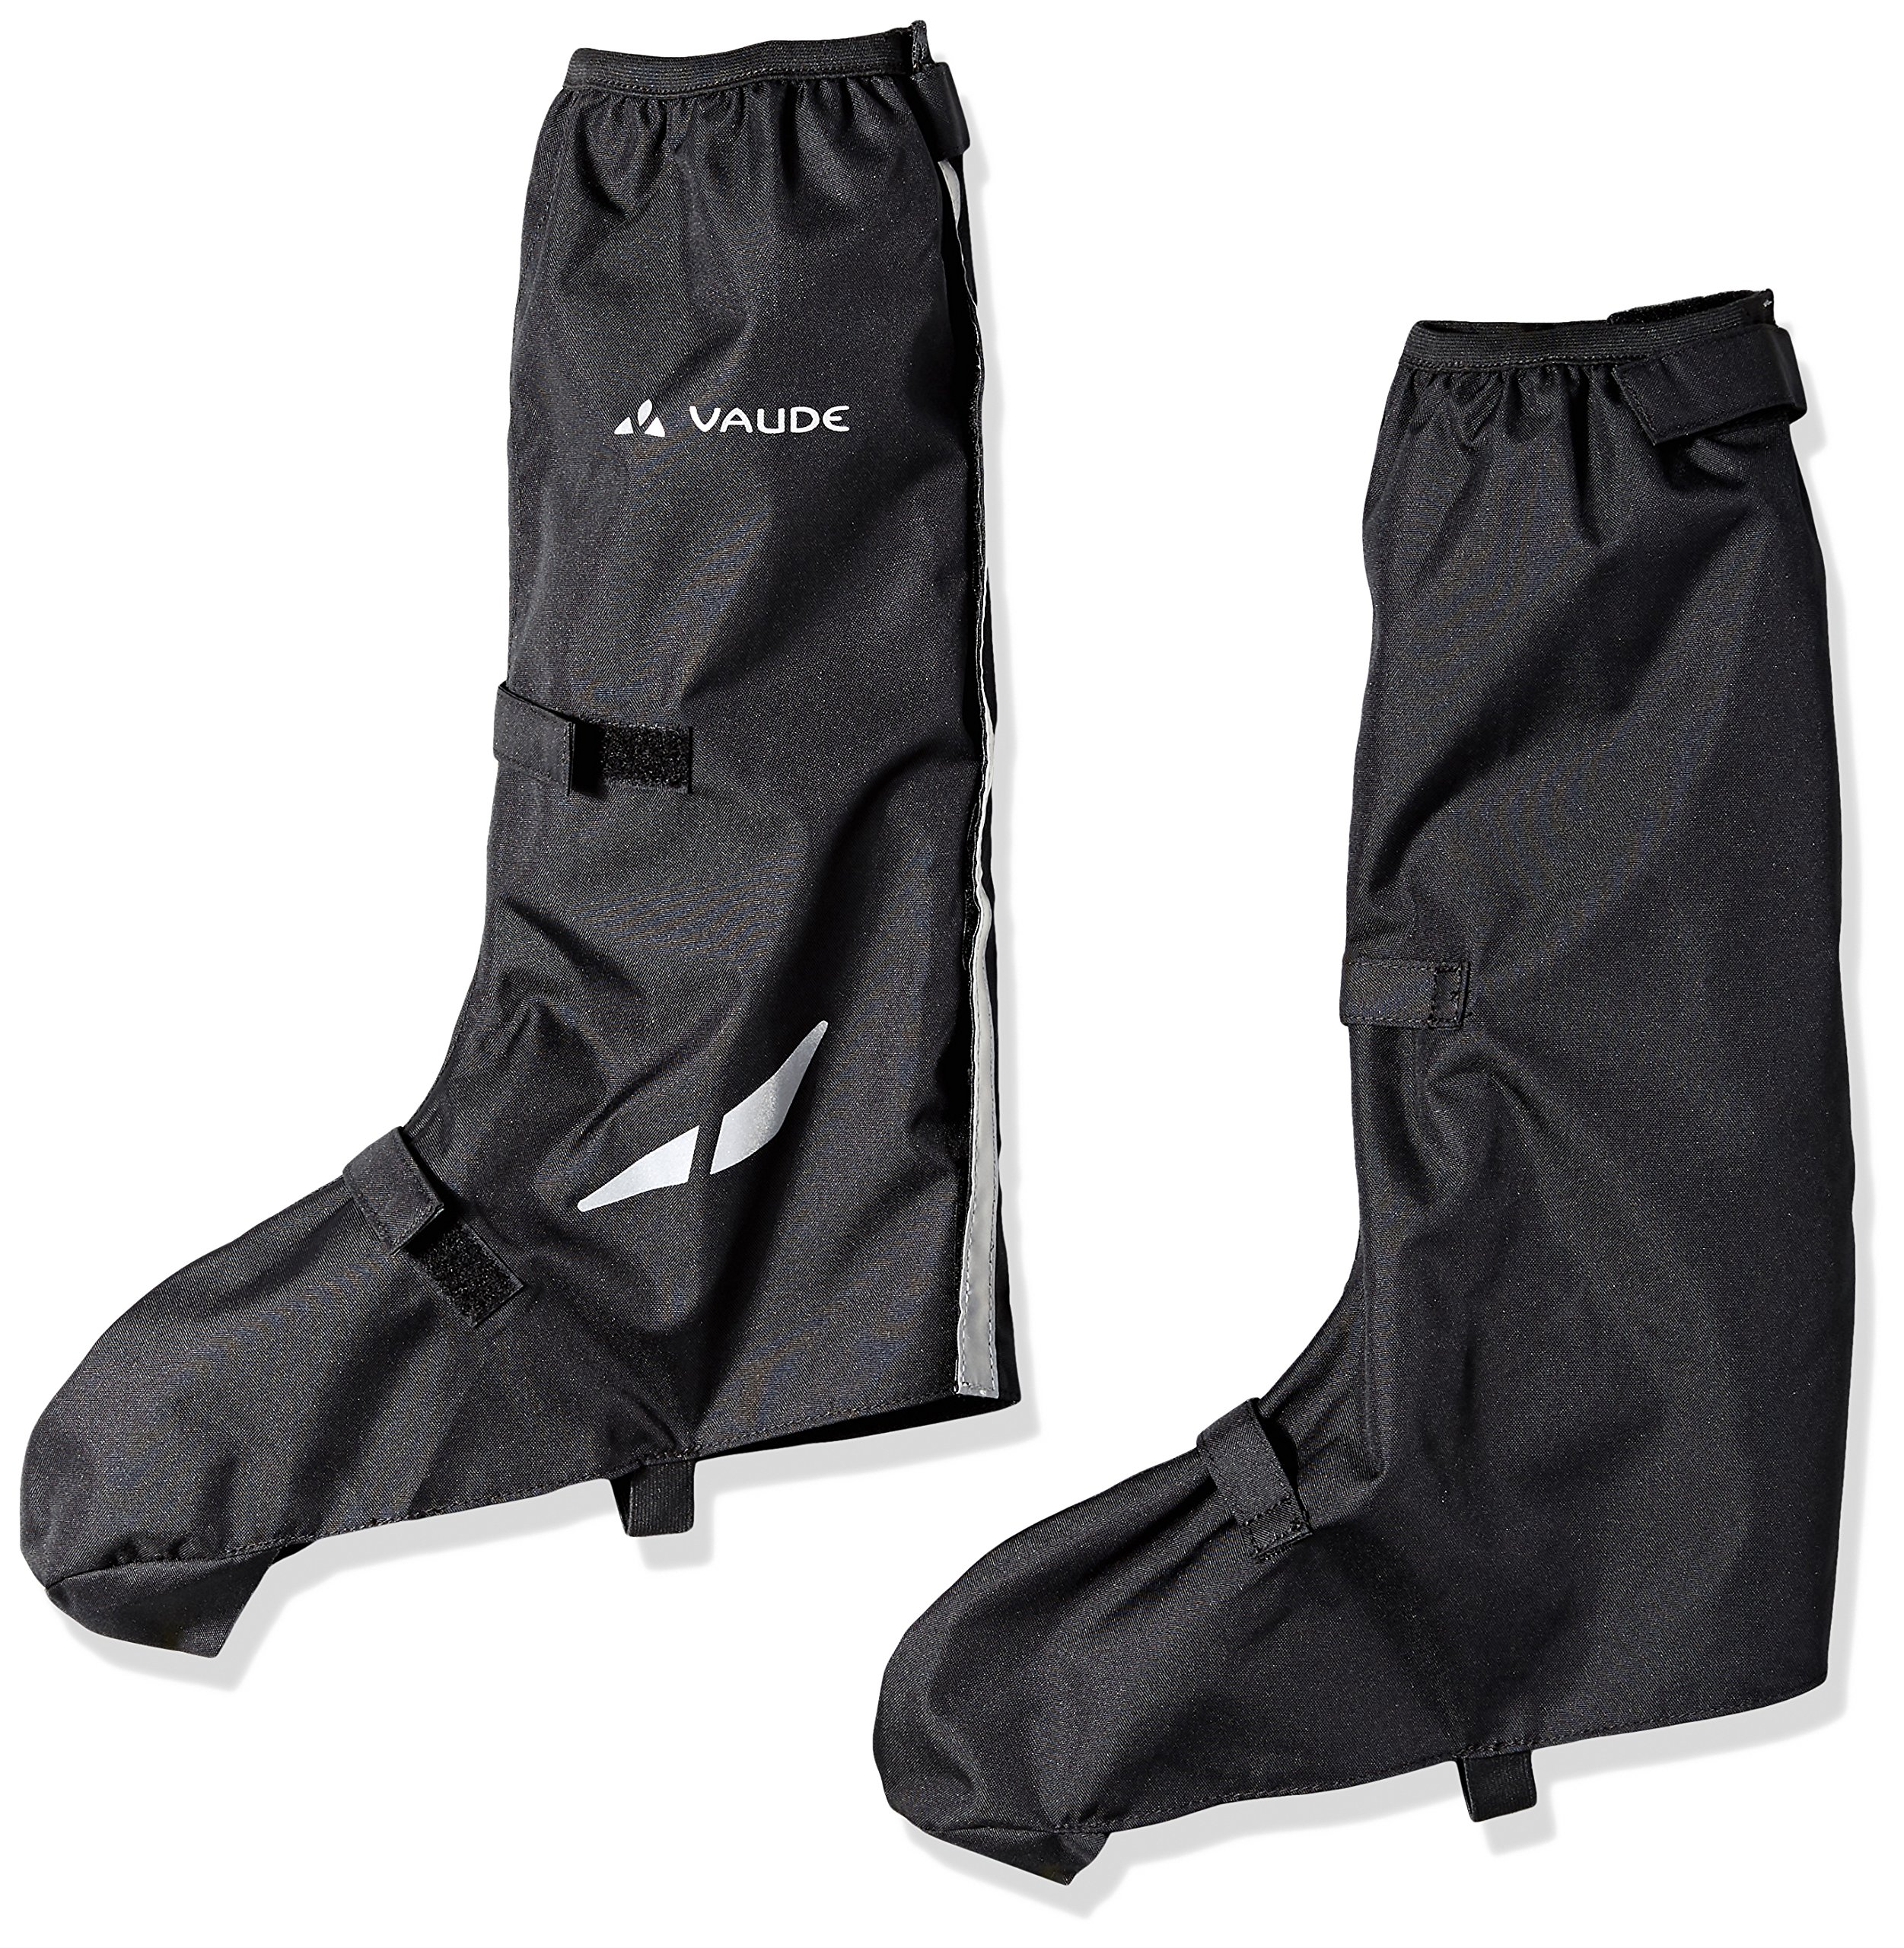 A1yvaOaVlyL - VAUDE Men's Bike Gaiter Long Shoe Covers